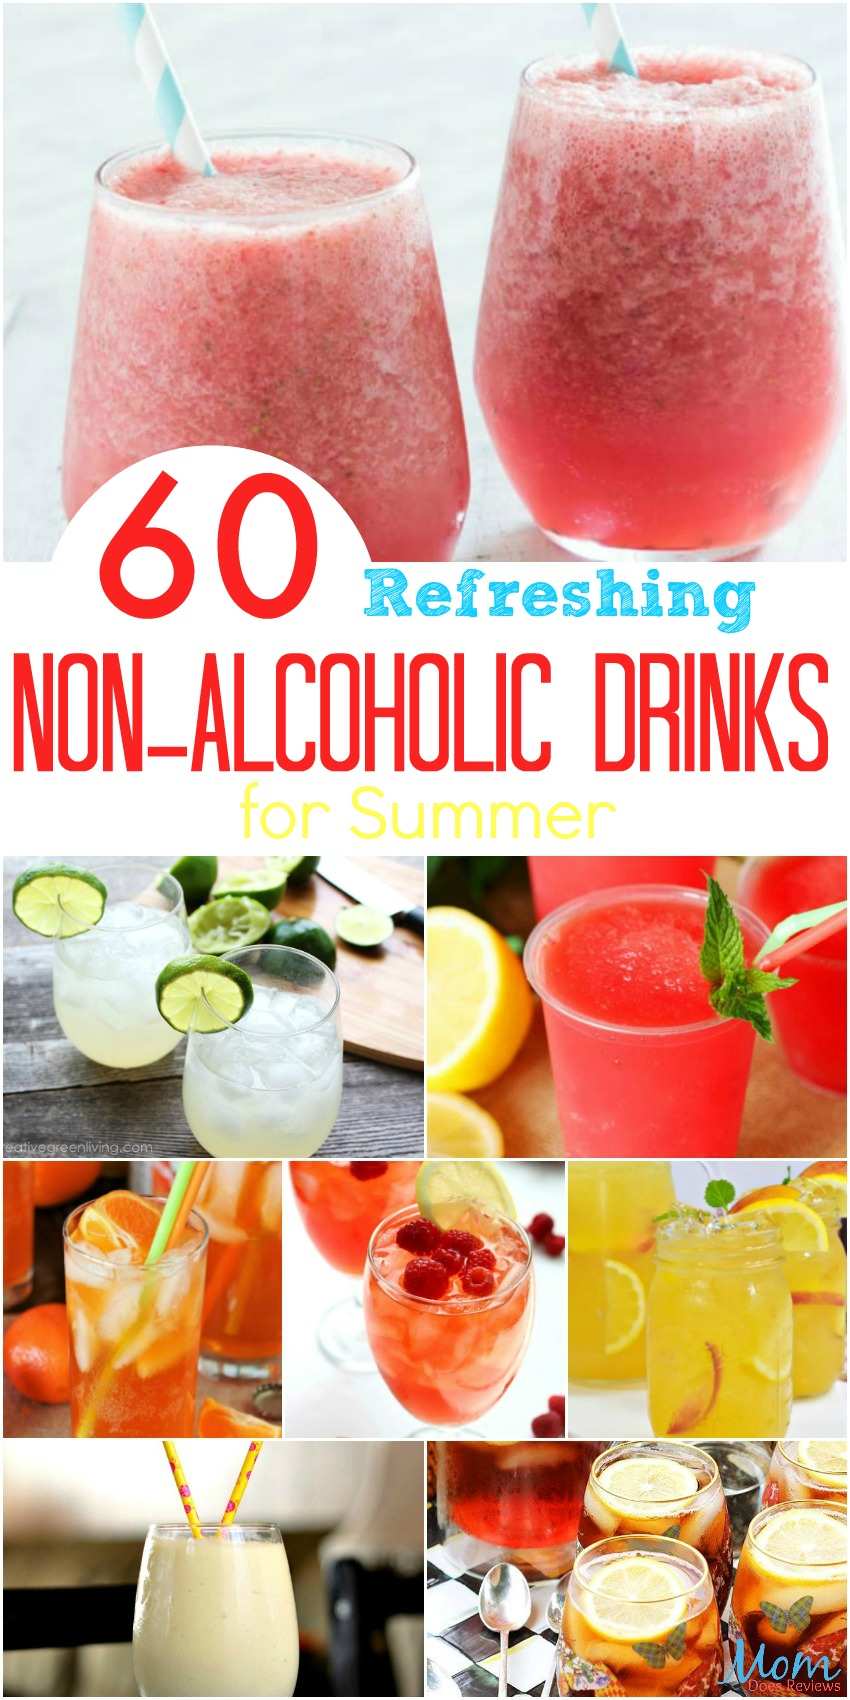 60 Refreshing Drinks for Summer #refreshingsummerdrinks